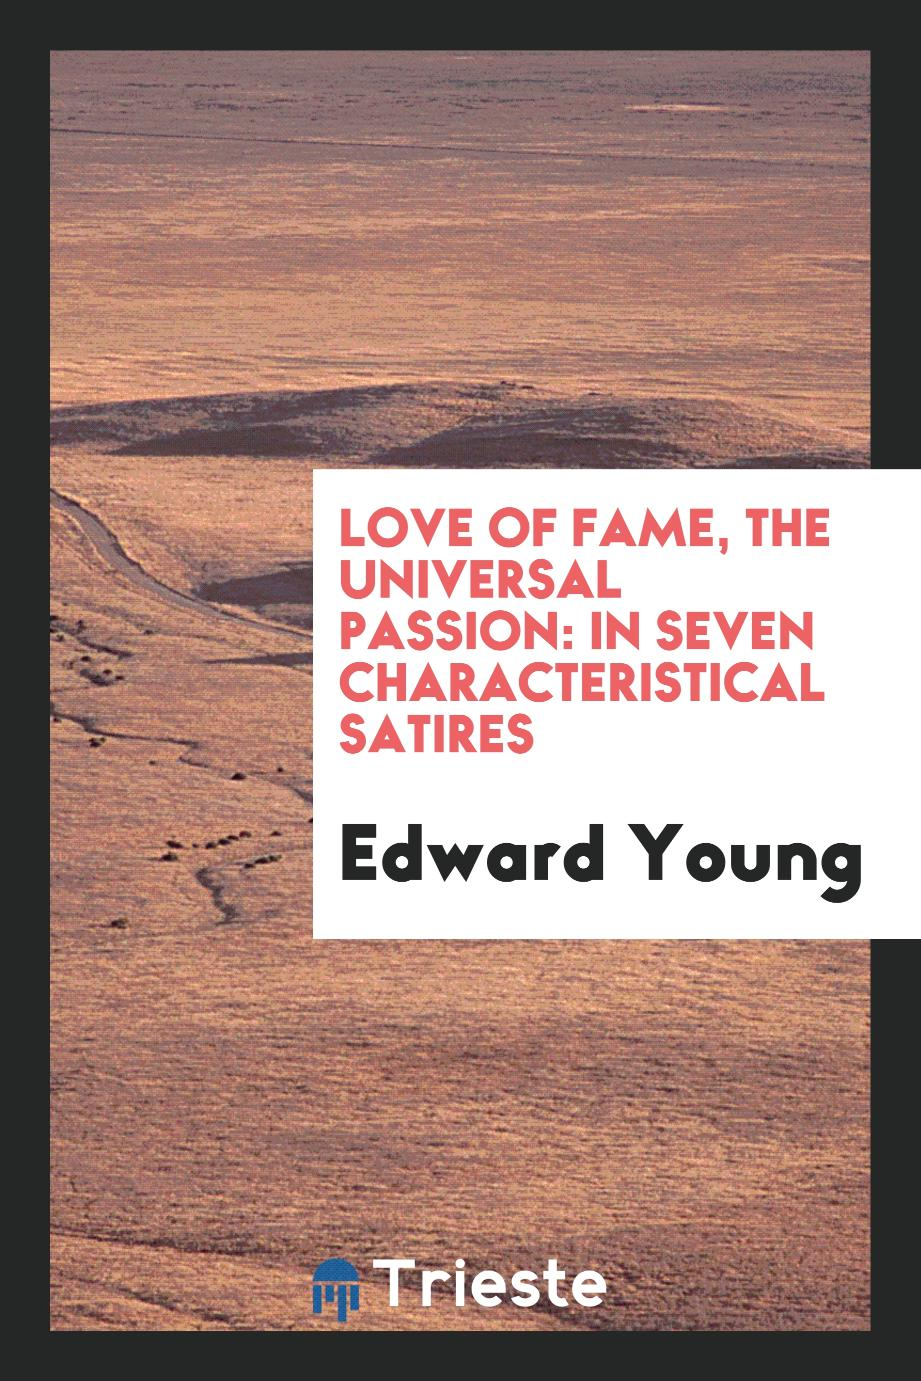 Love of Fame, the Universal Passion: In Seven Characteristical Satires